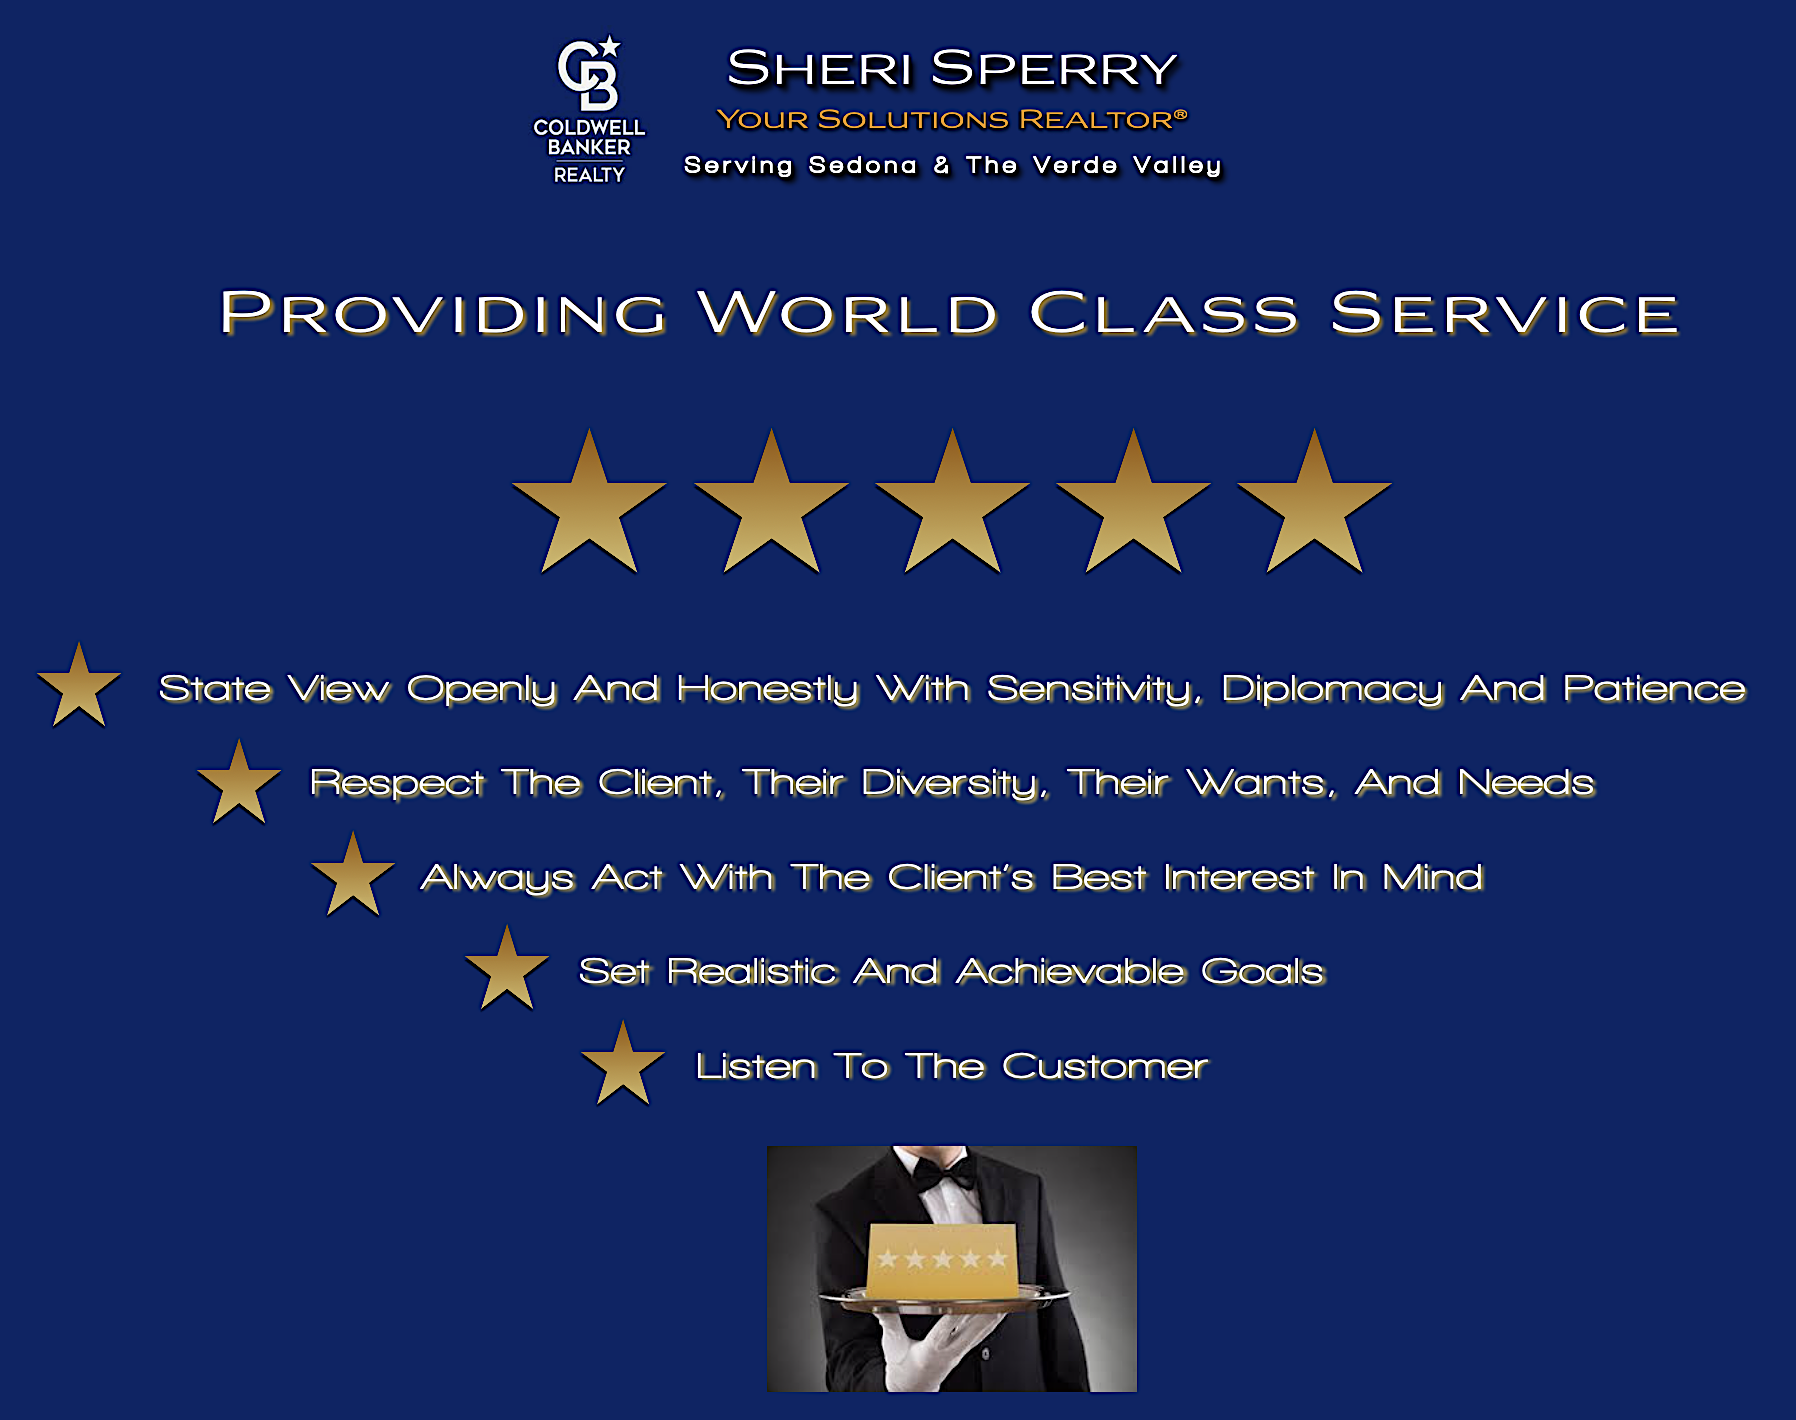 Providing World Class Service - White Glove Service 5 Star Service - Sheri Sperry Coldwell Banker Realty